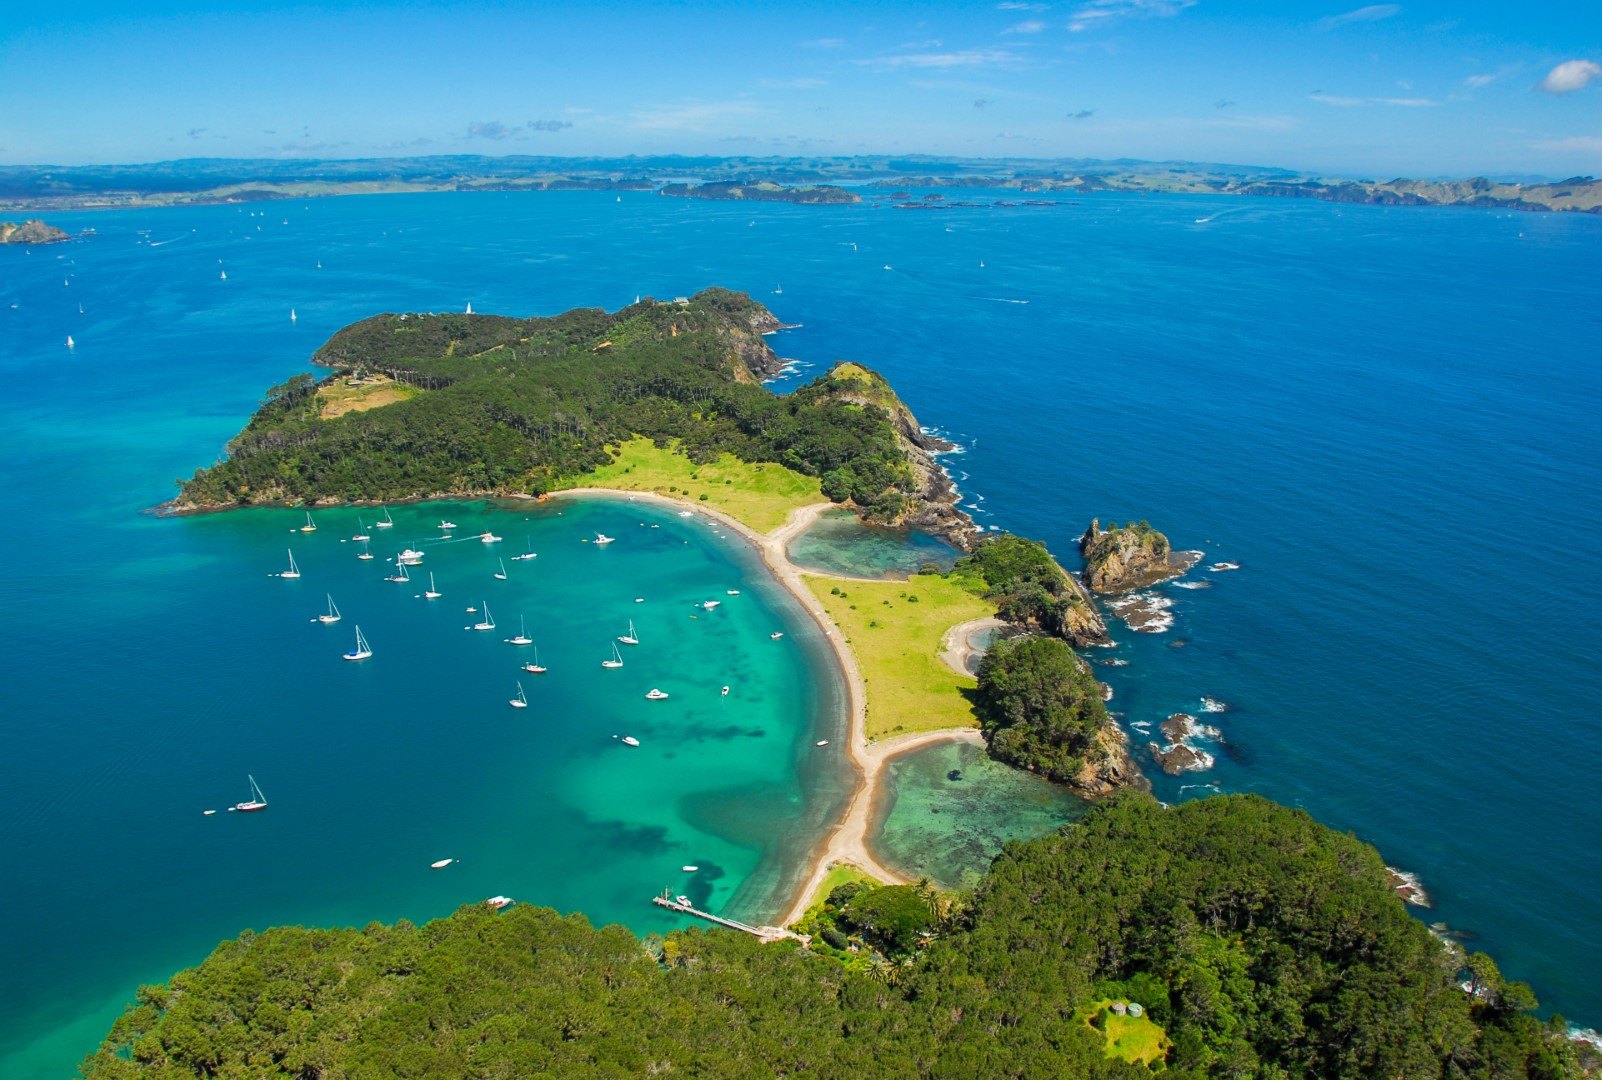 Roberton Island in der Bay of Islands, Photo Credit: Tourism New Zealand